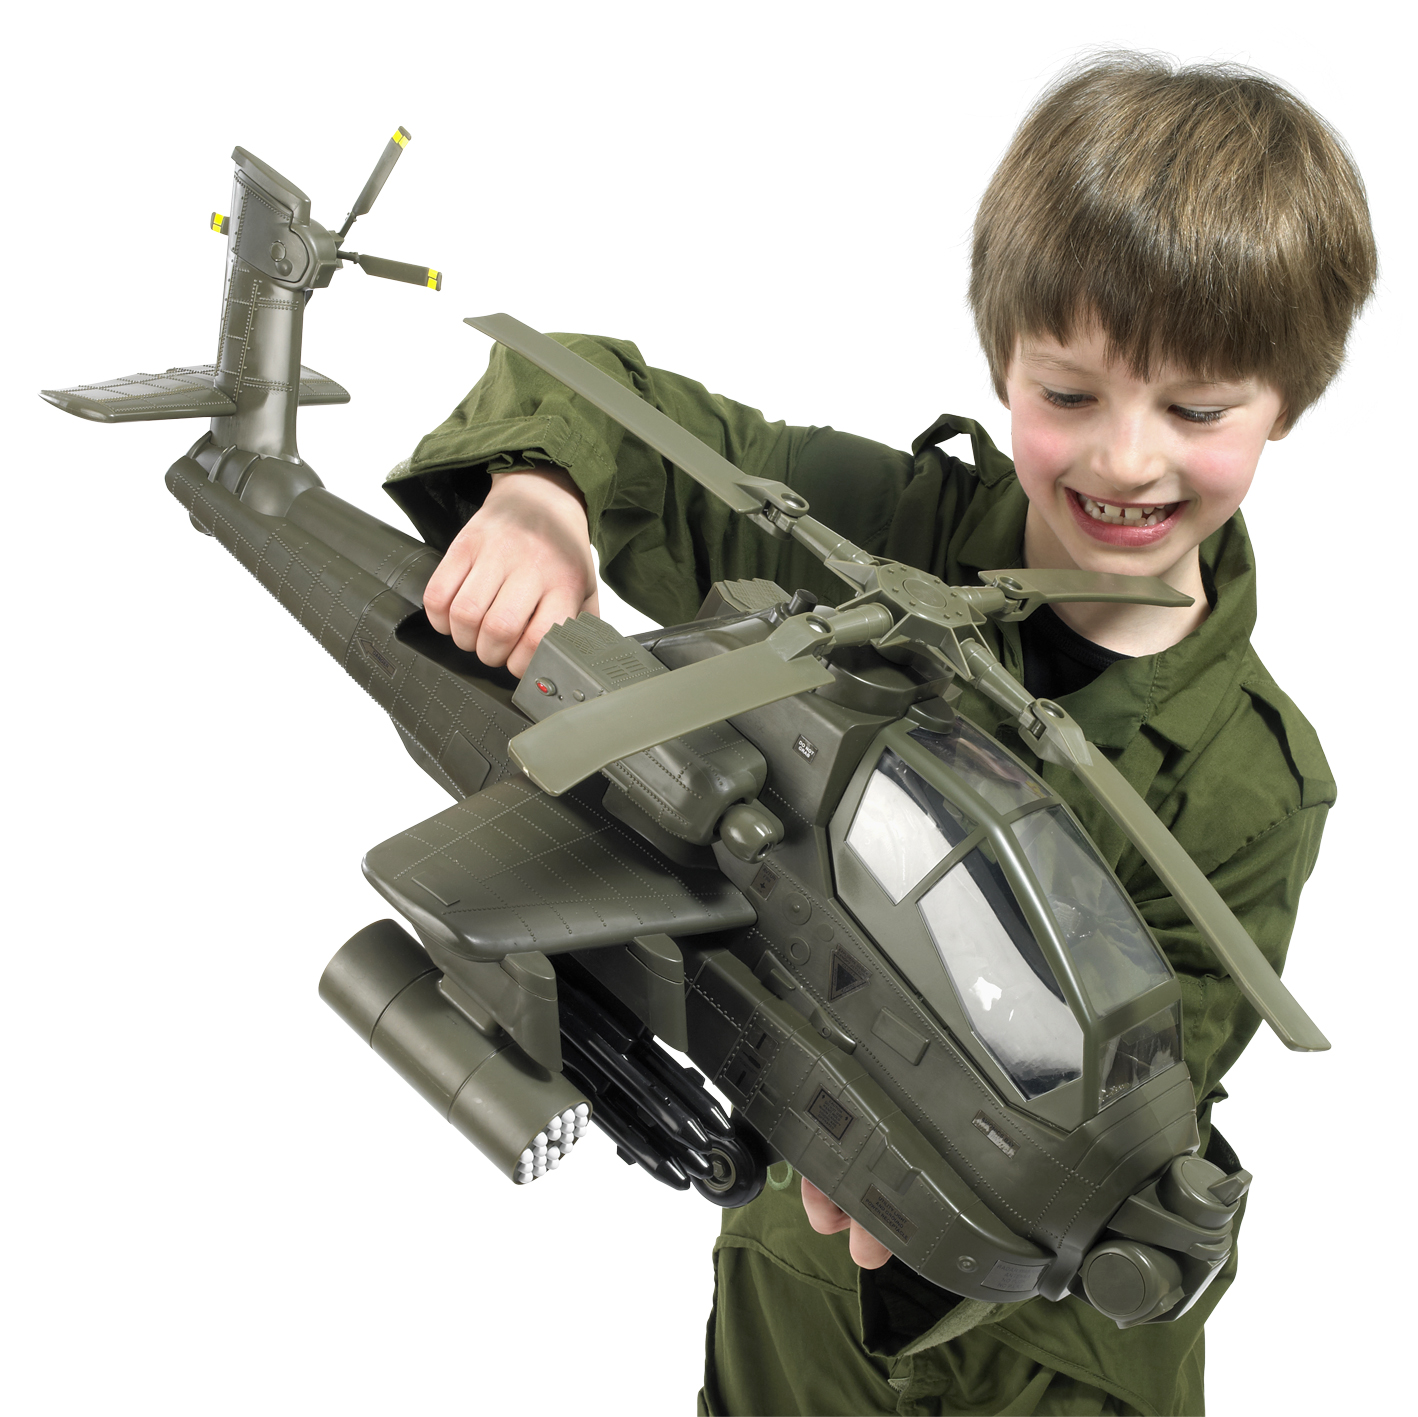 apache helicopter for sale with Psa Cheap Toys For Boys on Photos That Inspired The Good Jihadist in addition Mig 25r Foxbat further Ah 64 Apache Blueprint Art as well Psa Cheap Toys For Boys together with H48nr2006.